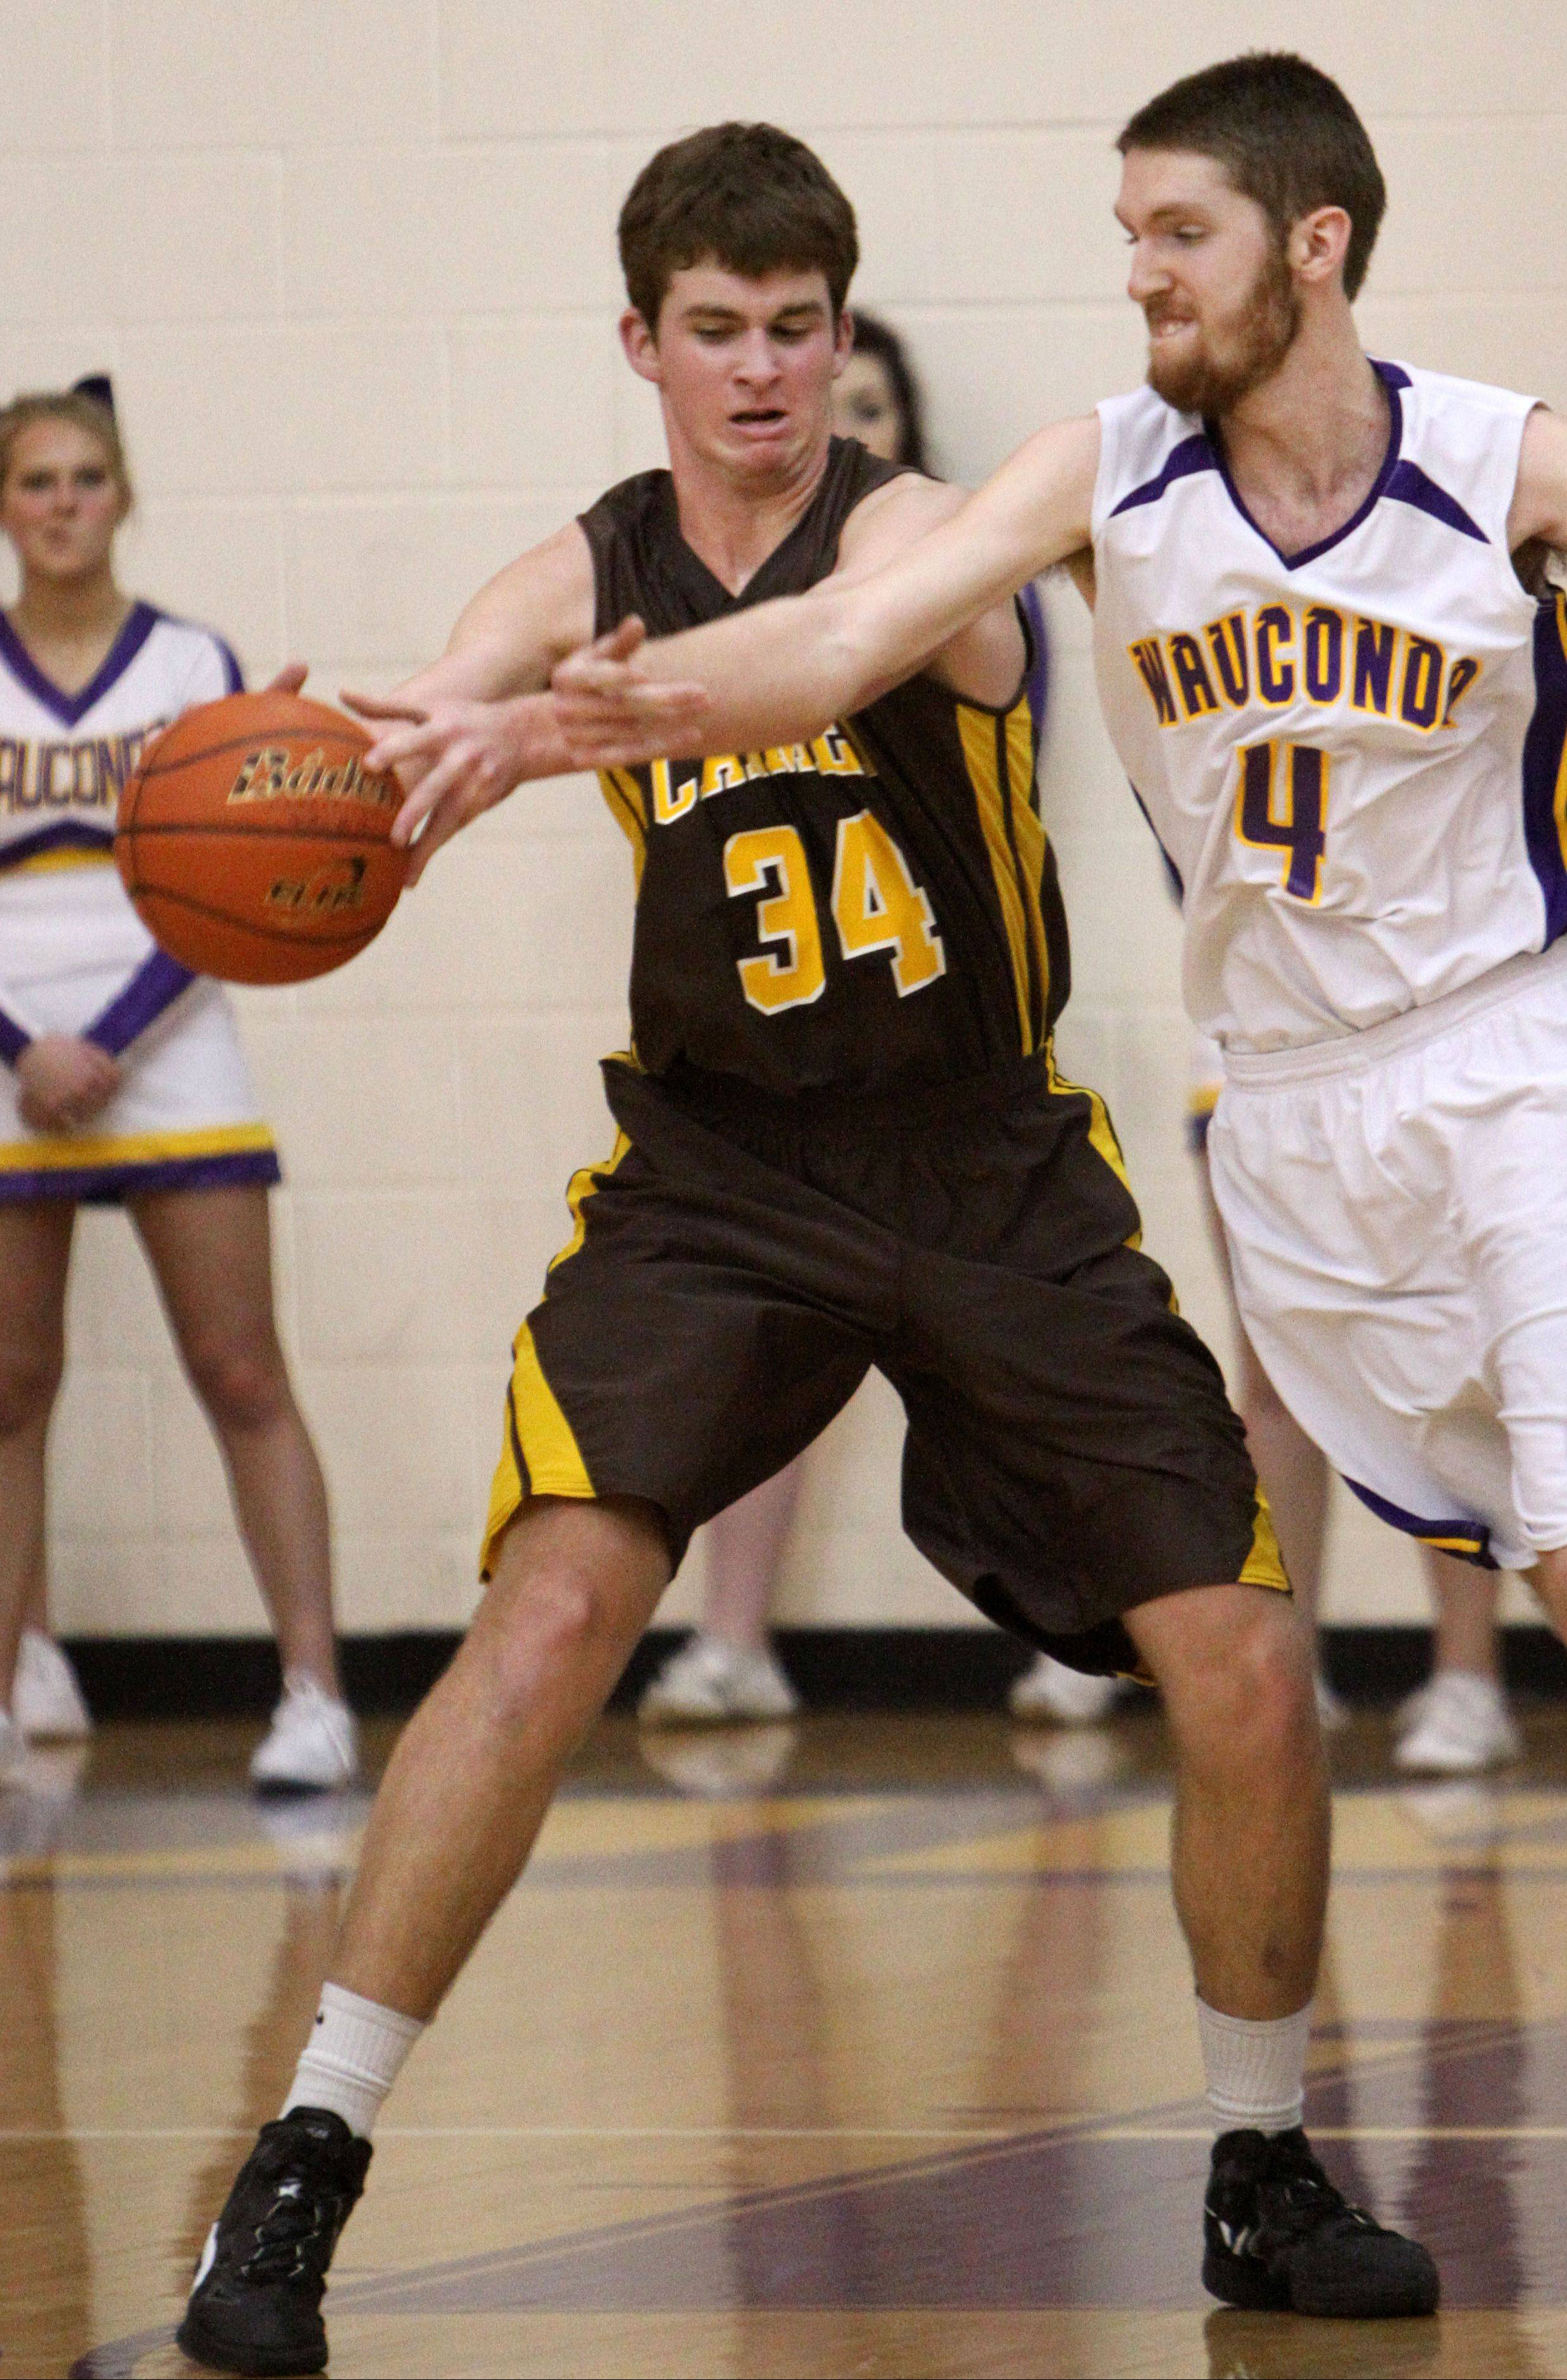 Wauconda�s Ricky Sidlowski, right, tries to steal the ball from Carmel�s Cullen Barr on Wednesday night in Wauconda.